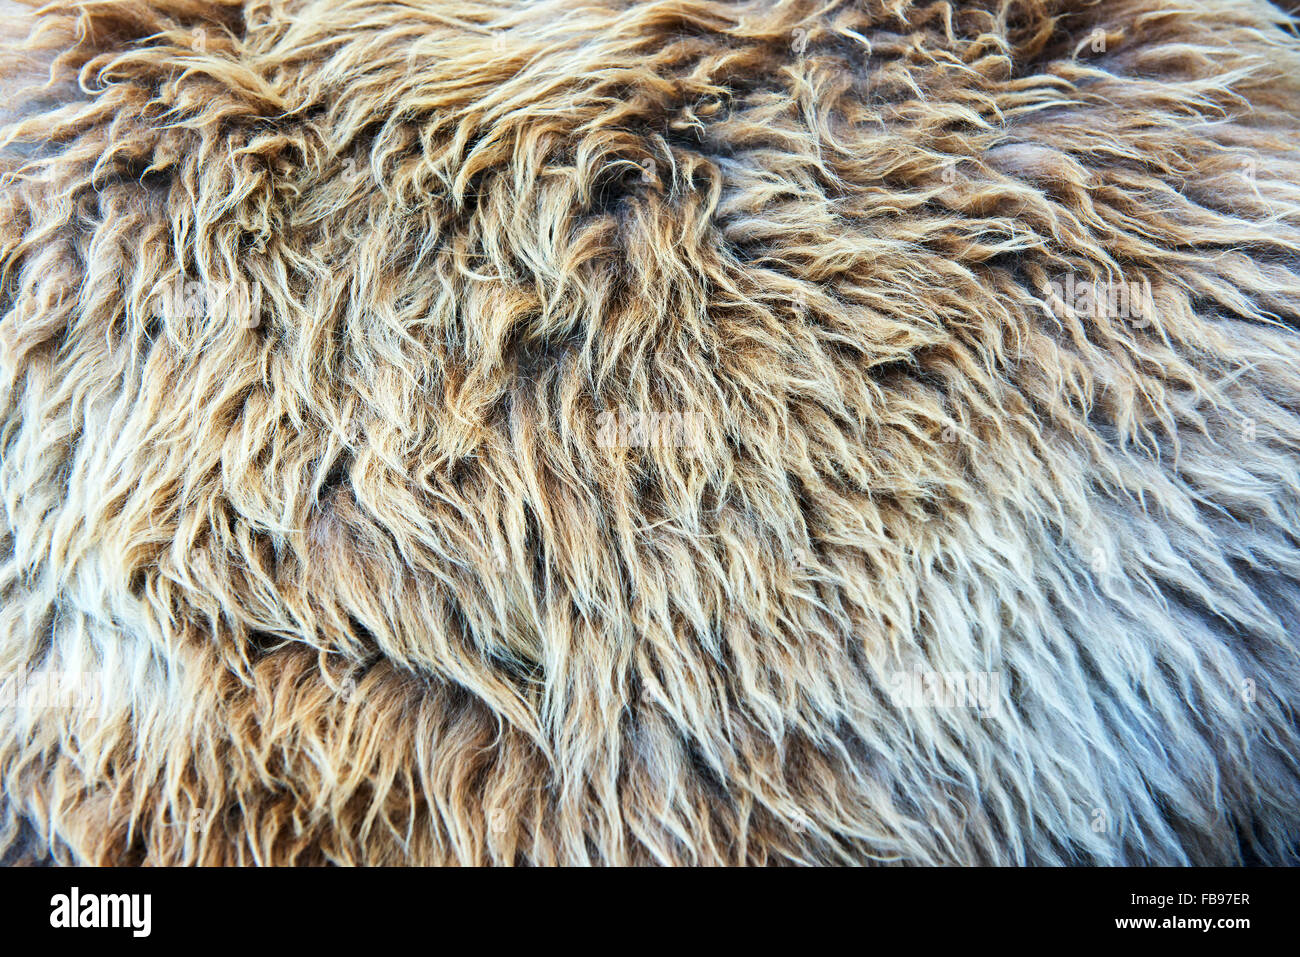 Fur texture closeup with soft shaggy hair - Stock Image